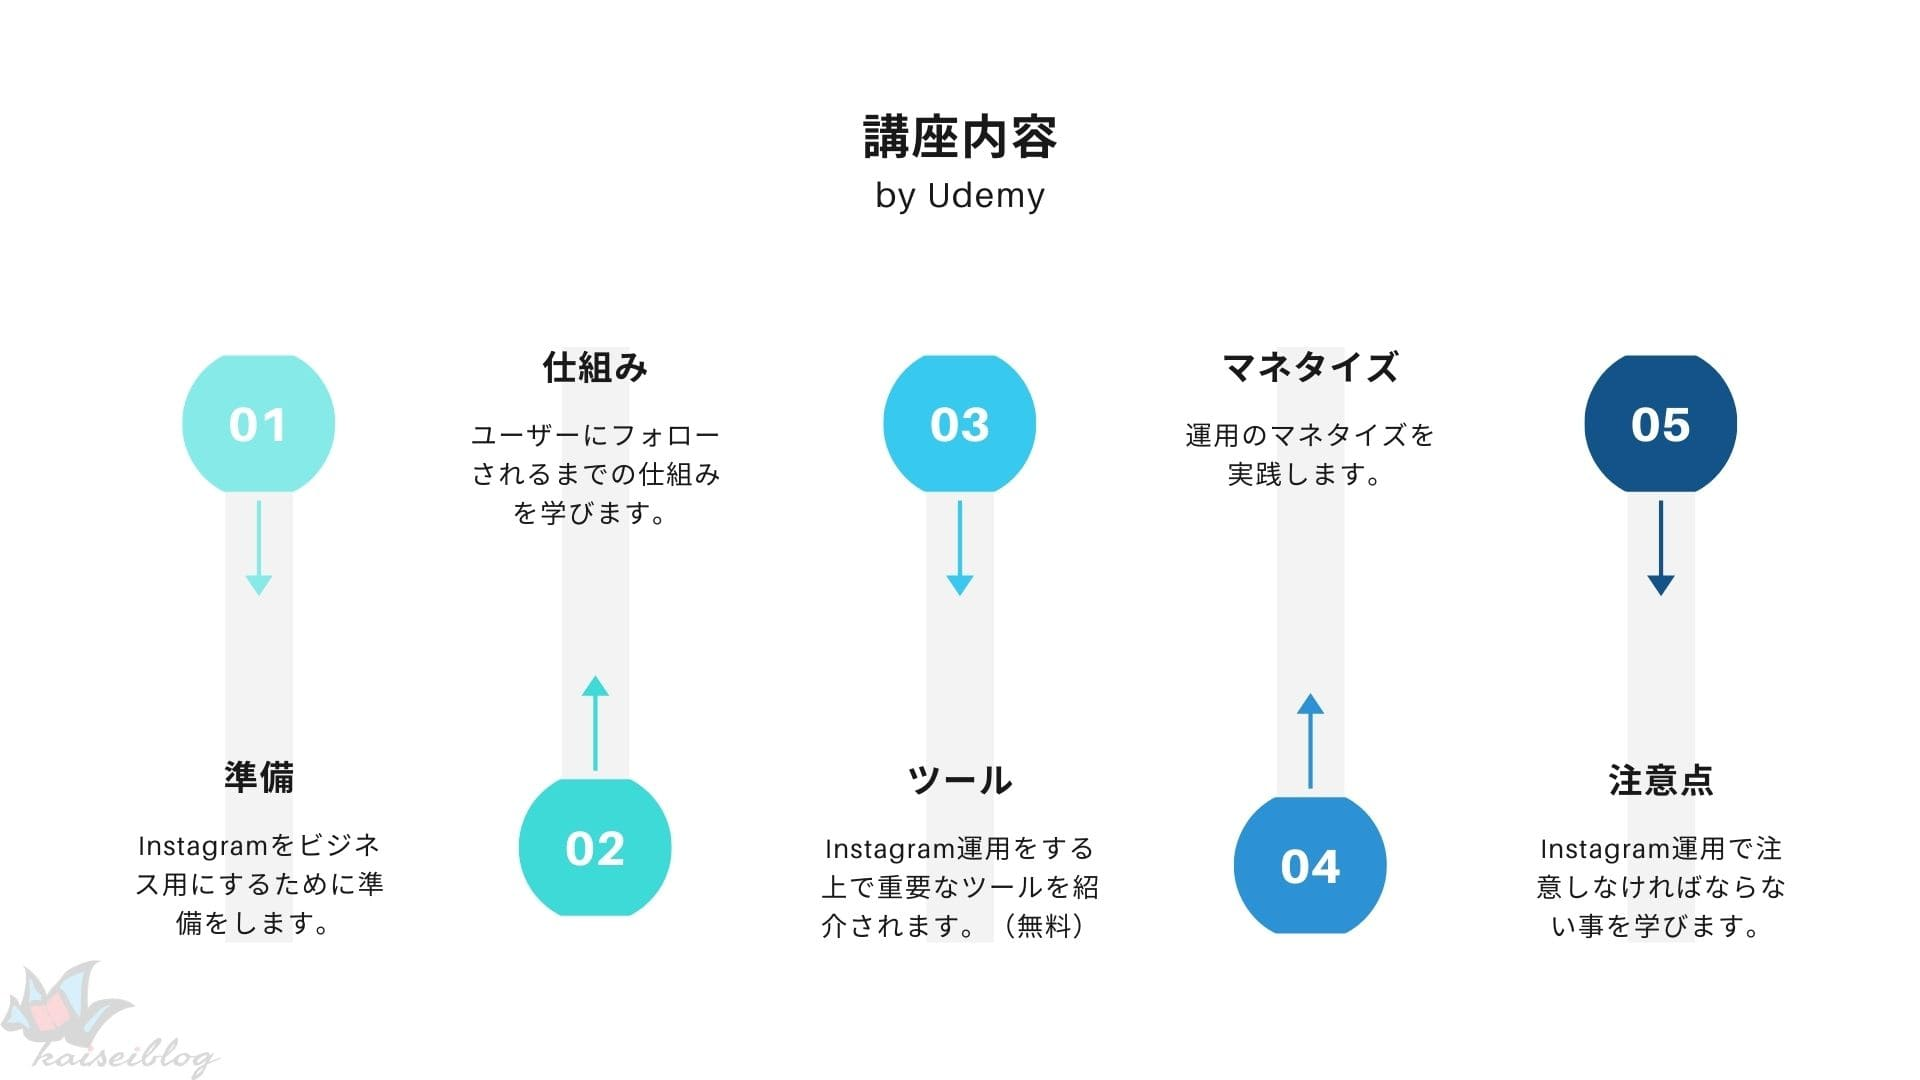 Udemy Instagram 講座内容